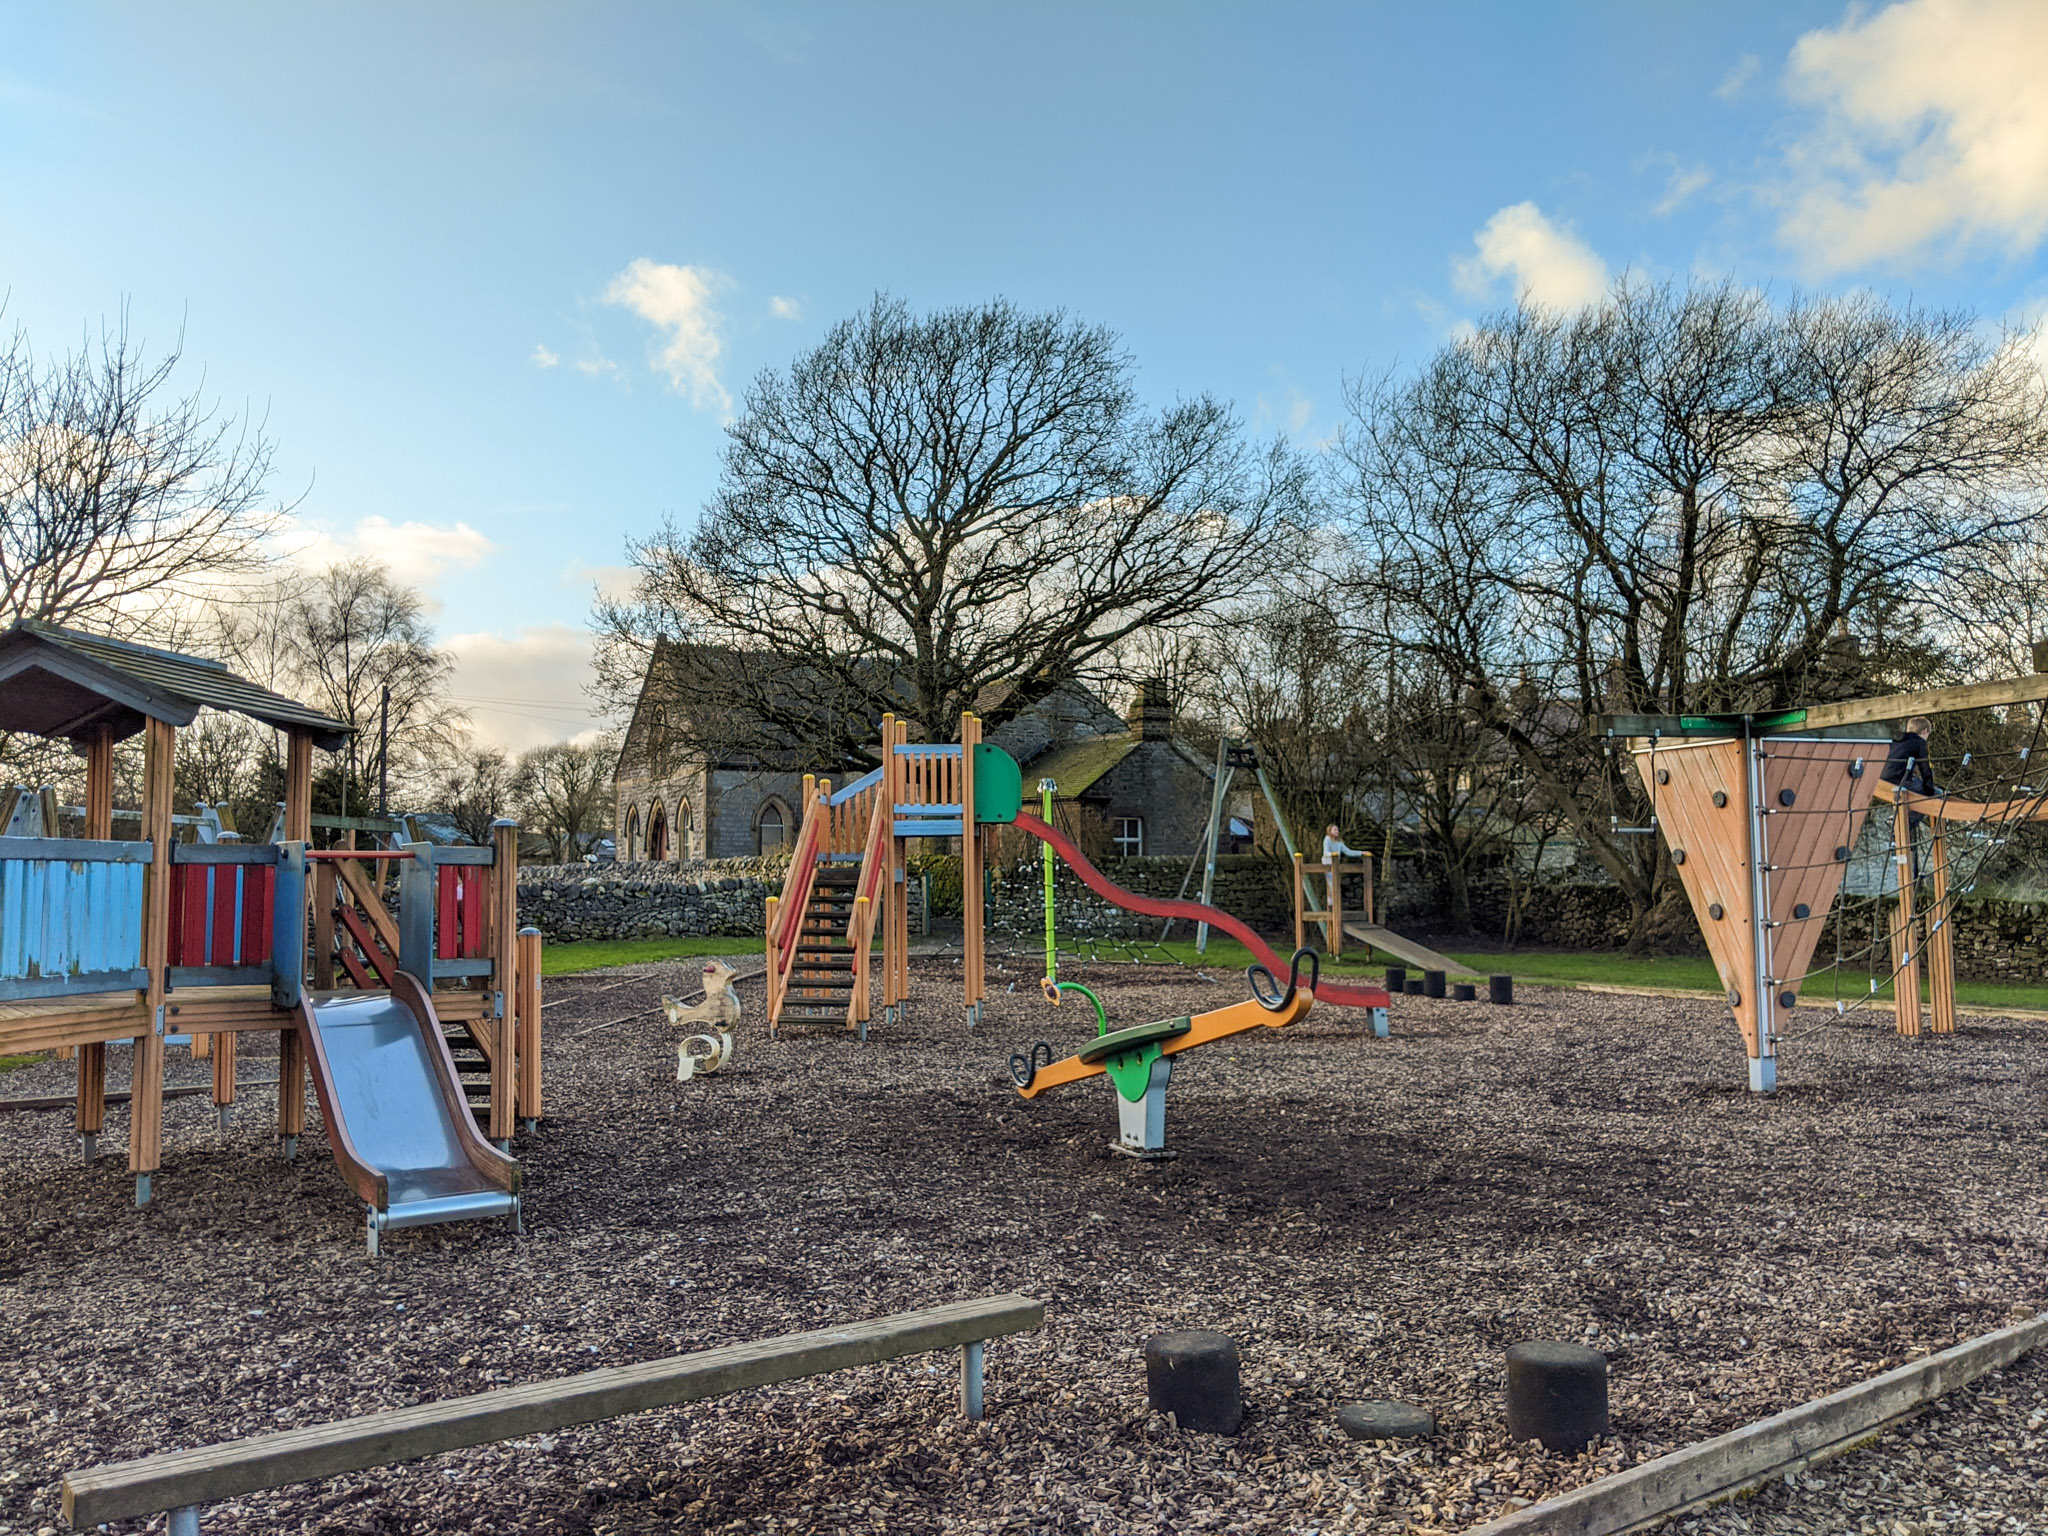 Best kid friendly cafes and pubs with playgrounds in the Peak District